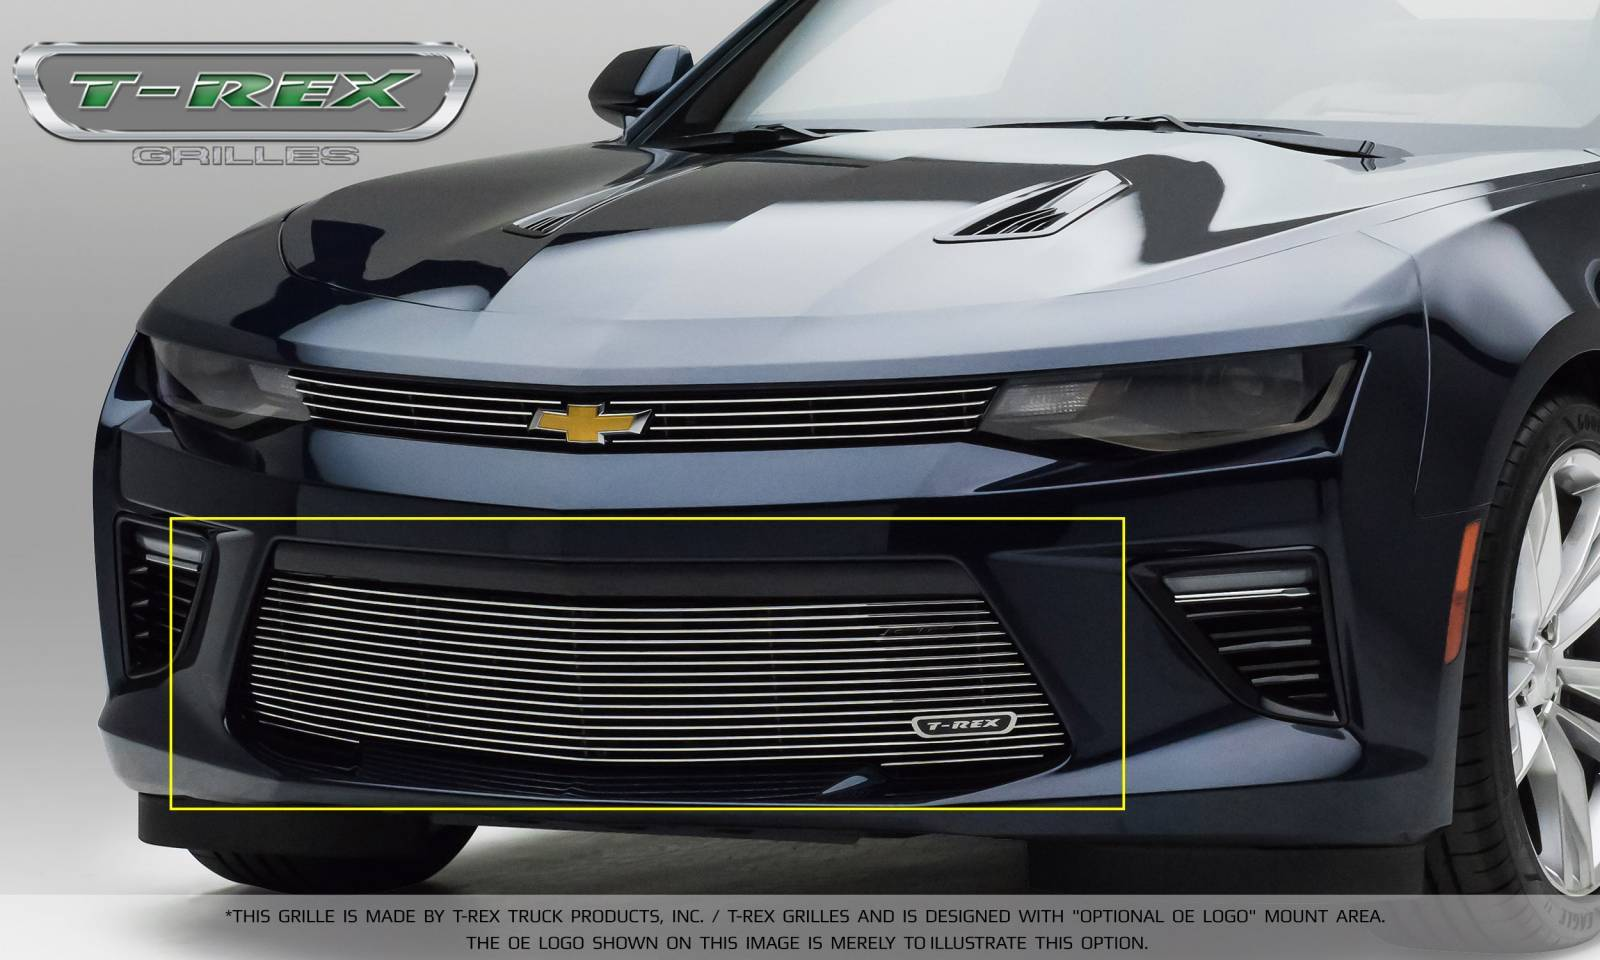 T-REX Chevrolet Camaro V8 -  Billet Series - Bumper Grille Overlay with Polished Steel Finish - Pt # 25036